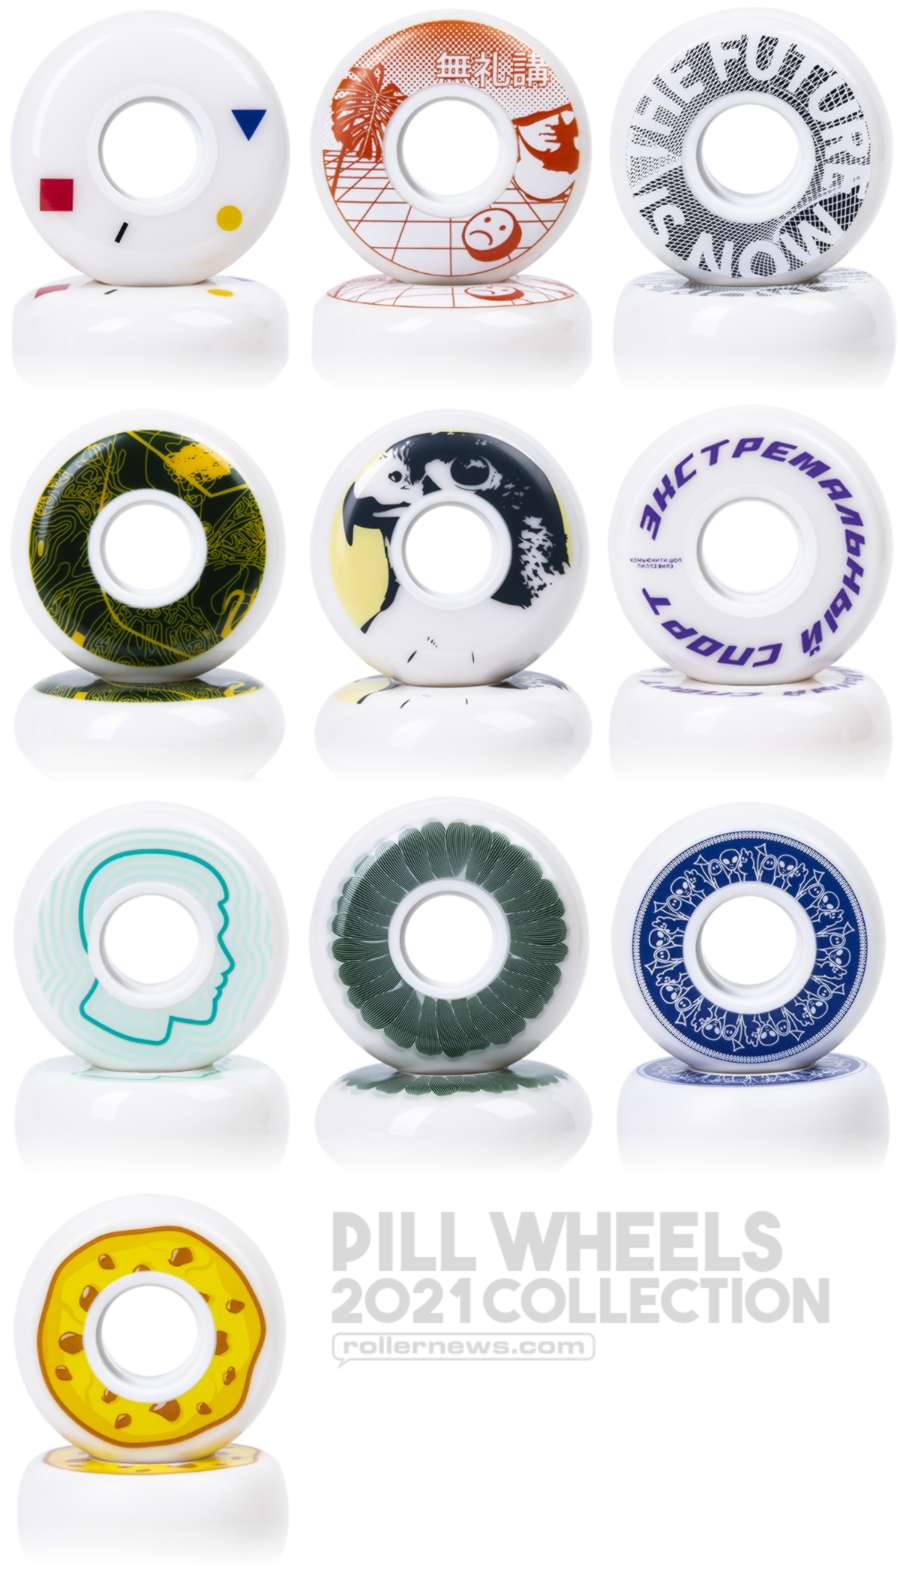 Pills Wheels - 2021 Collection